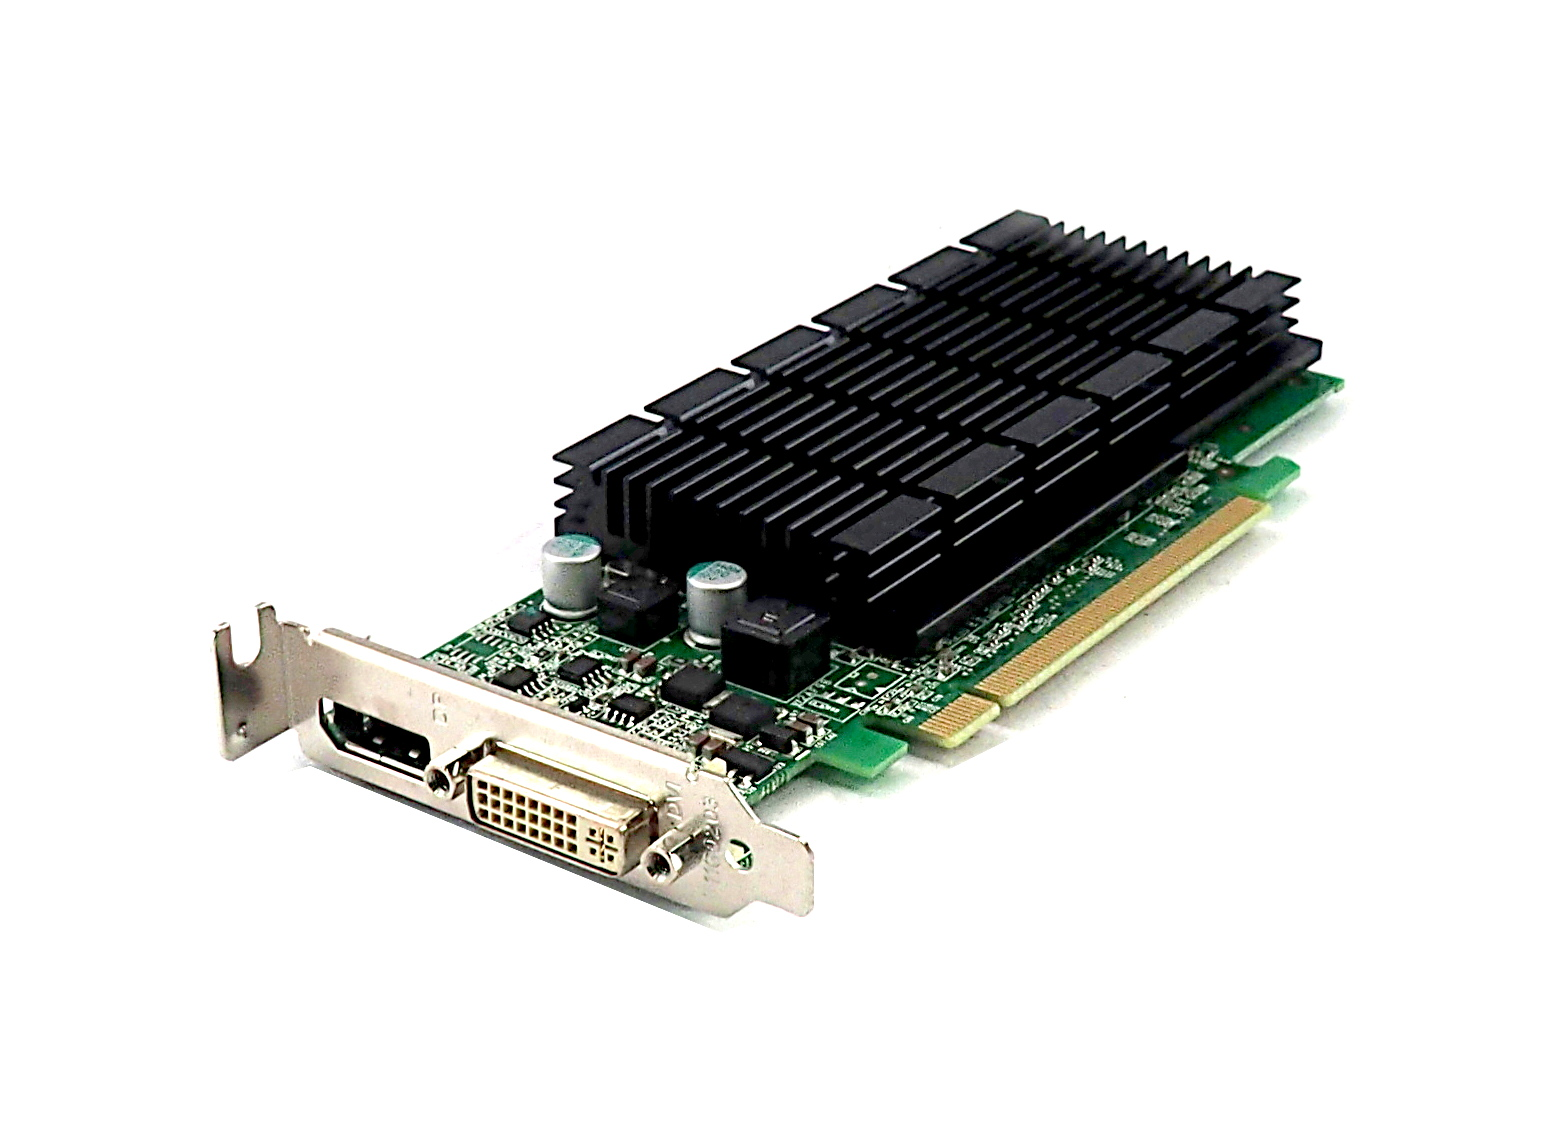 Fujitsu S26361-D2422-V405 GS2 nVidia GeForce 405 DP 512 MB LP Graphics Card